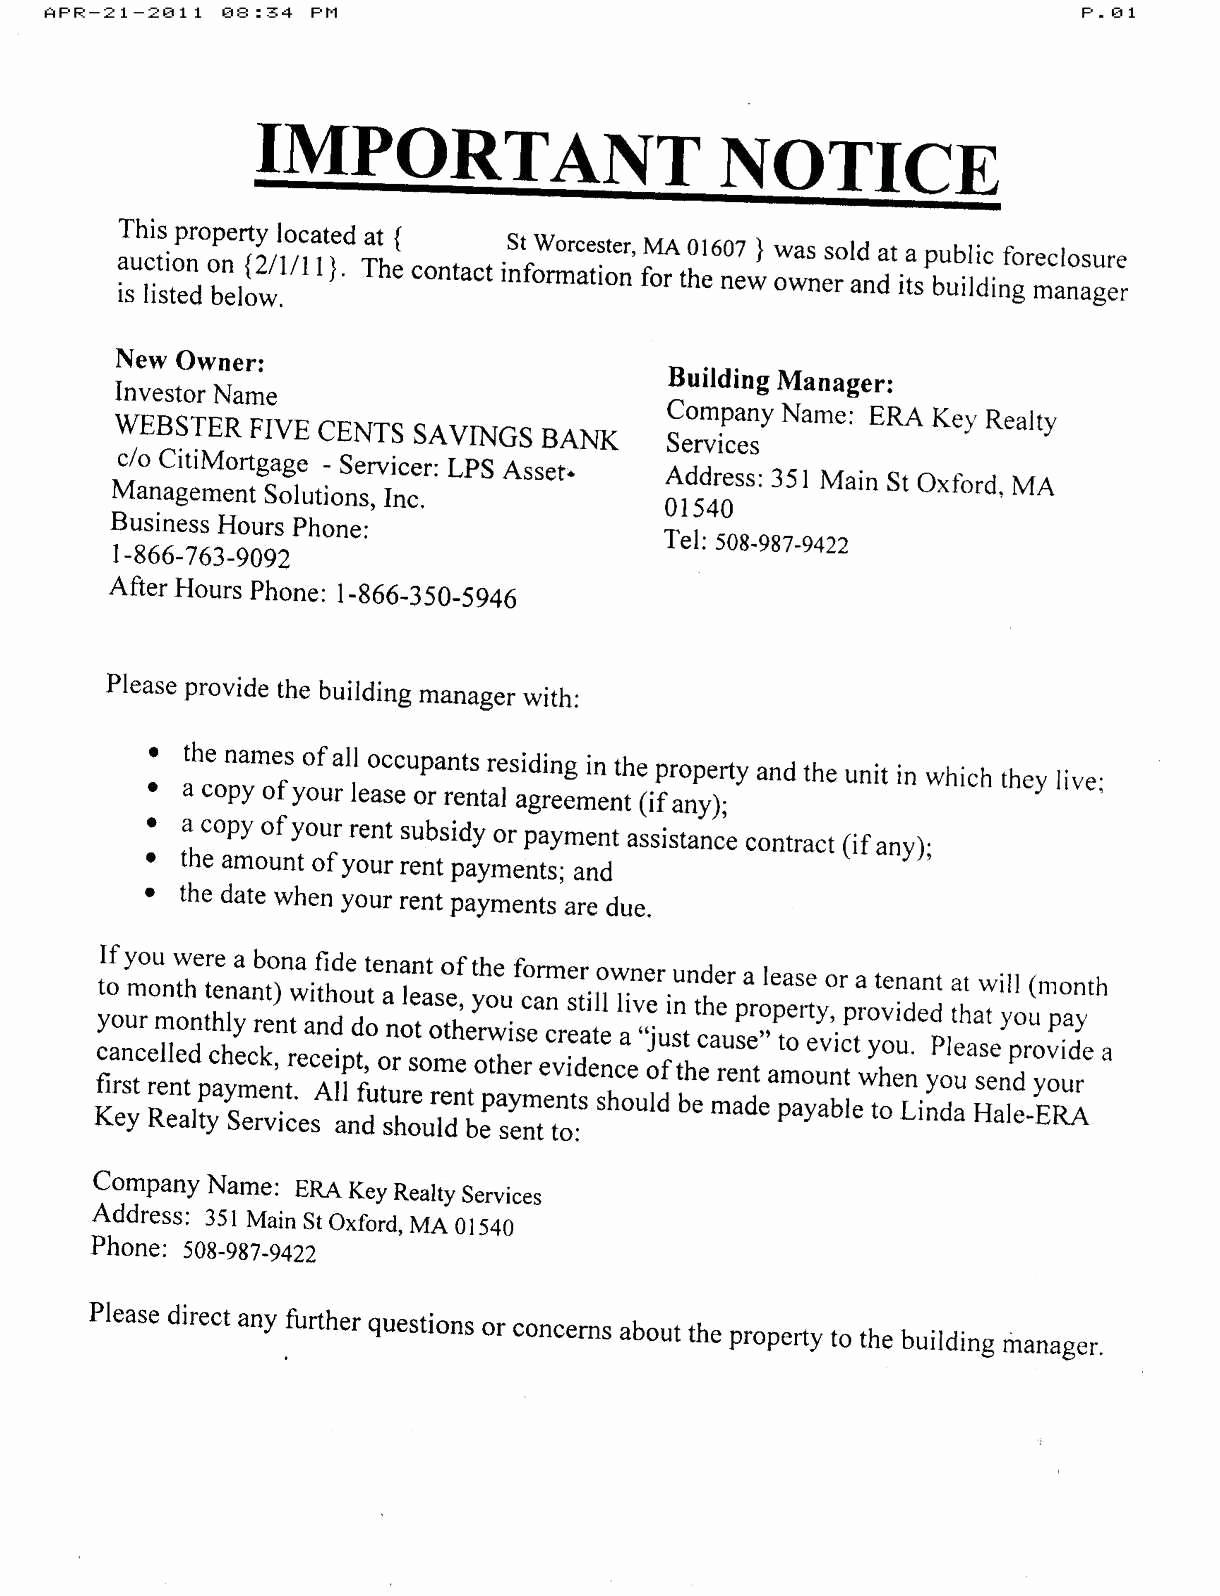 Mortgage Default Letter Template - Mortgage Default Letter Template New Mortgage Default Letter